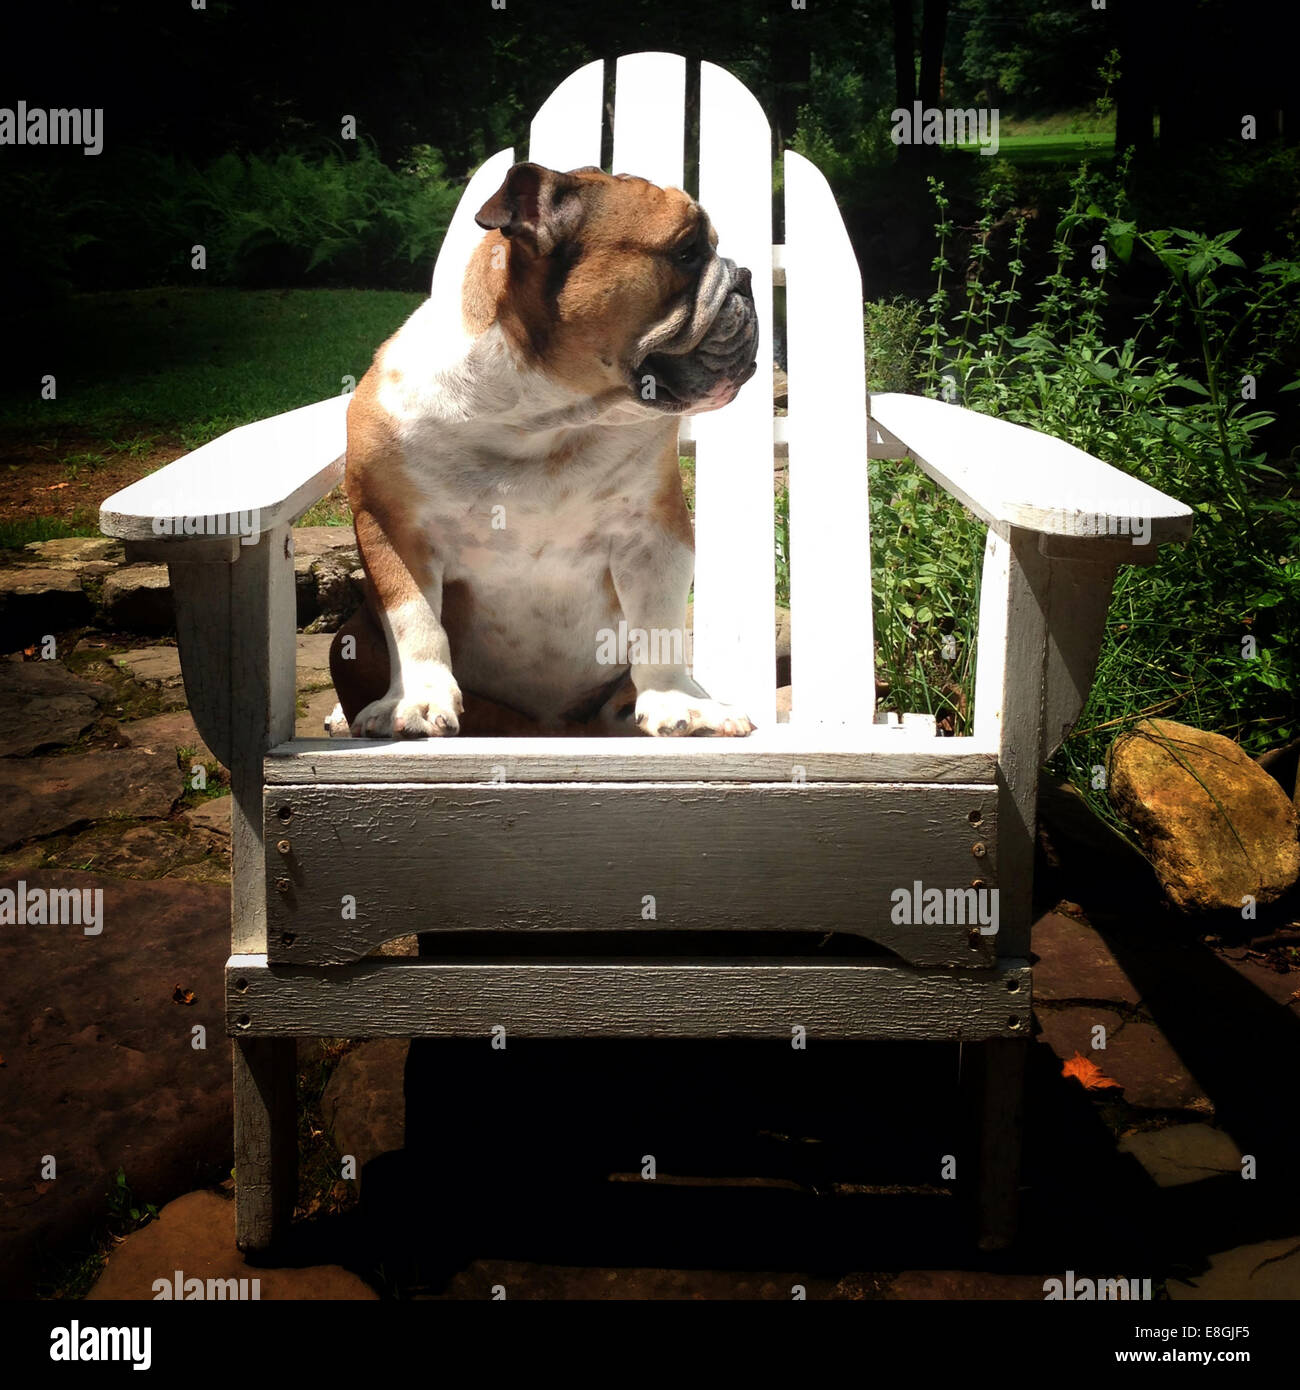 Dog sitting on a wooden chair in the garden - Stock Image